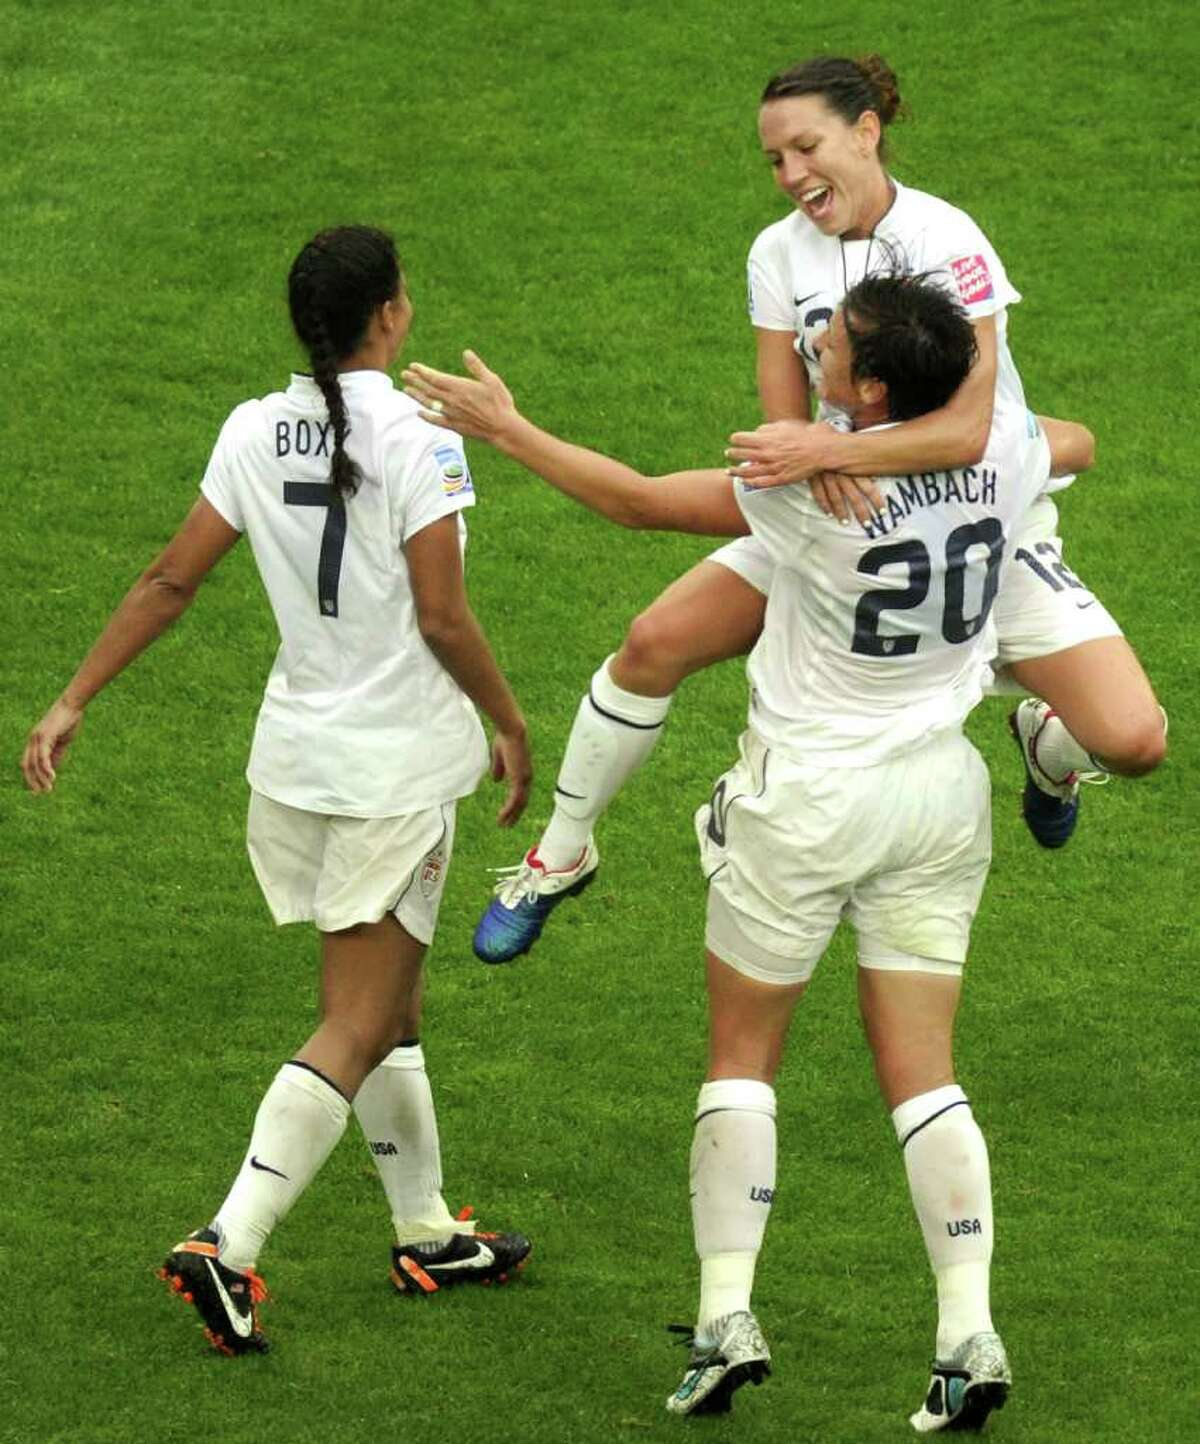 U.S.s midfielder Shannon Boxx (L), striker Lauren Cheney (C) and striker Abby Wambach (R) celebrate at the final whistle in the FIFA women's football World Cup semi final match France vs U.S. in Moenchengladbach, western Germany, on Wednesday. The U.S. defeated France 3-1 to earn their place in the final on July 17. AFP PHOTO / ODD ANDERSEN